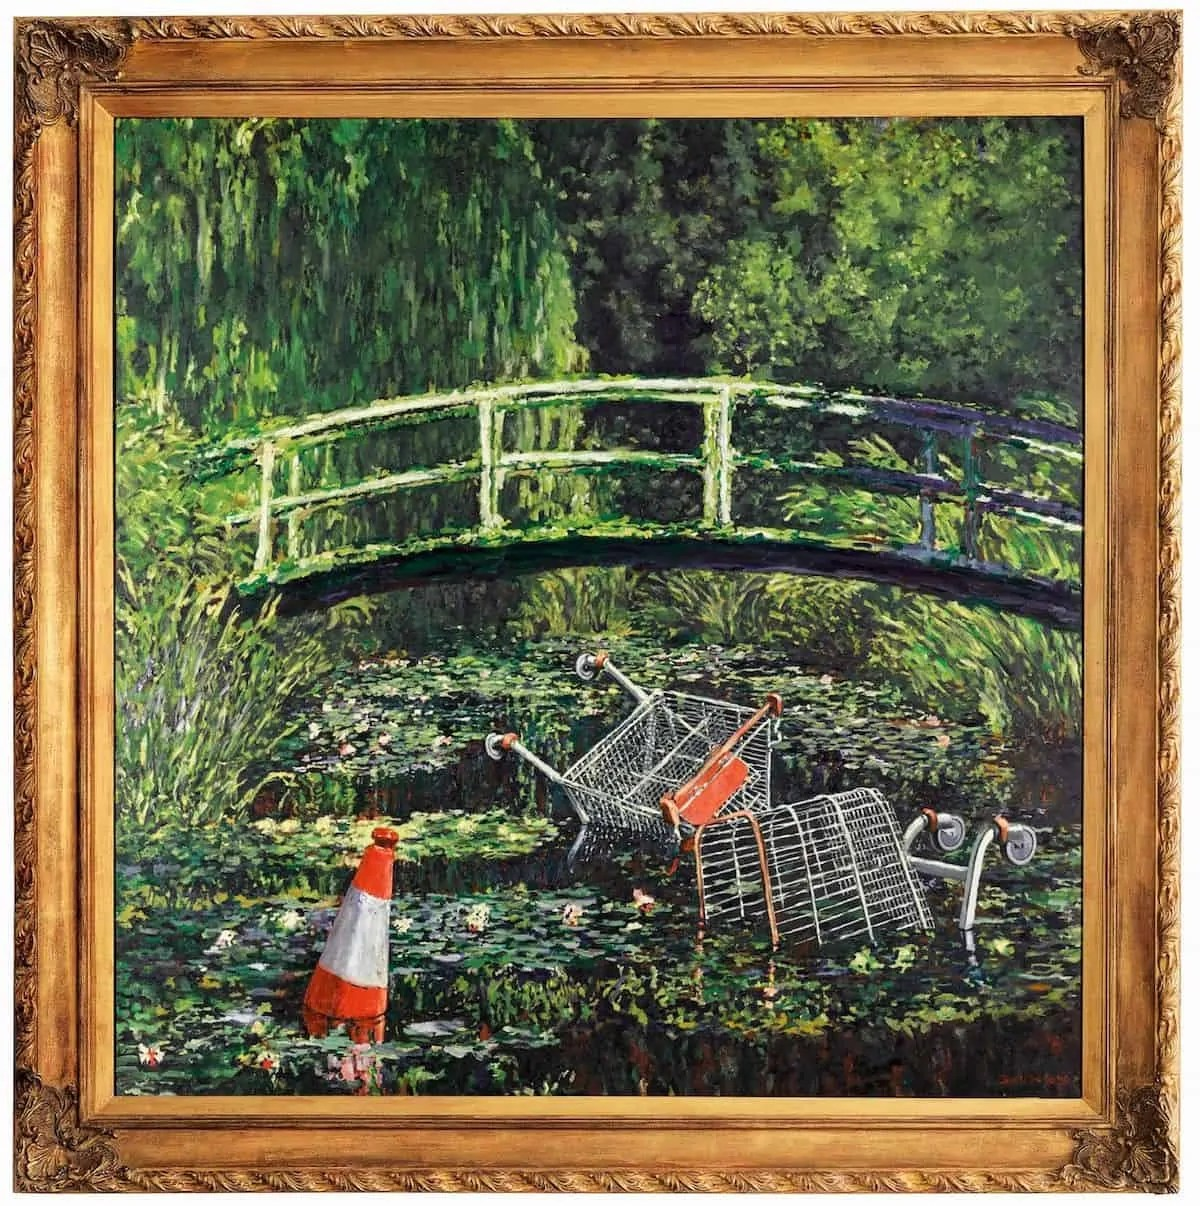 A revision of a Monet water lily painting with a traffic cone and shopping trollies in the water by Banksy Art World Roundup